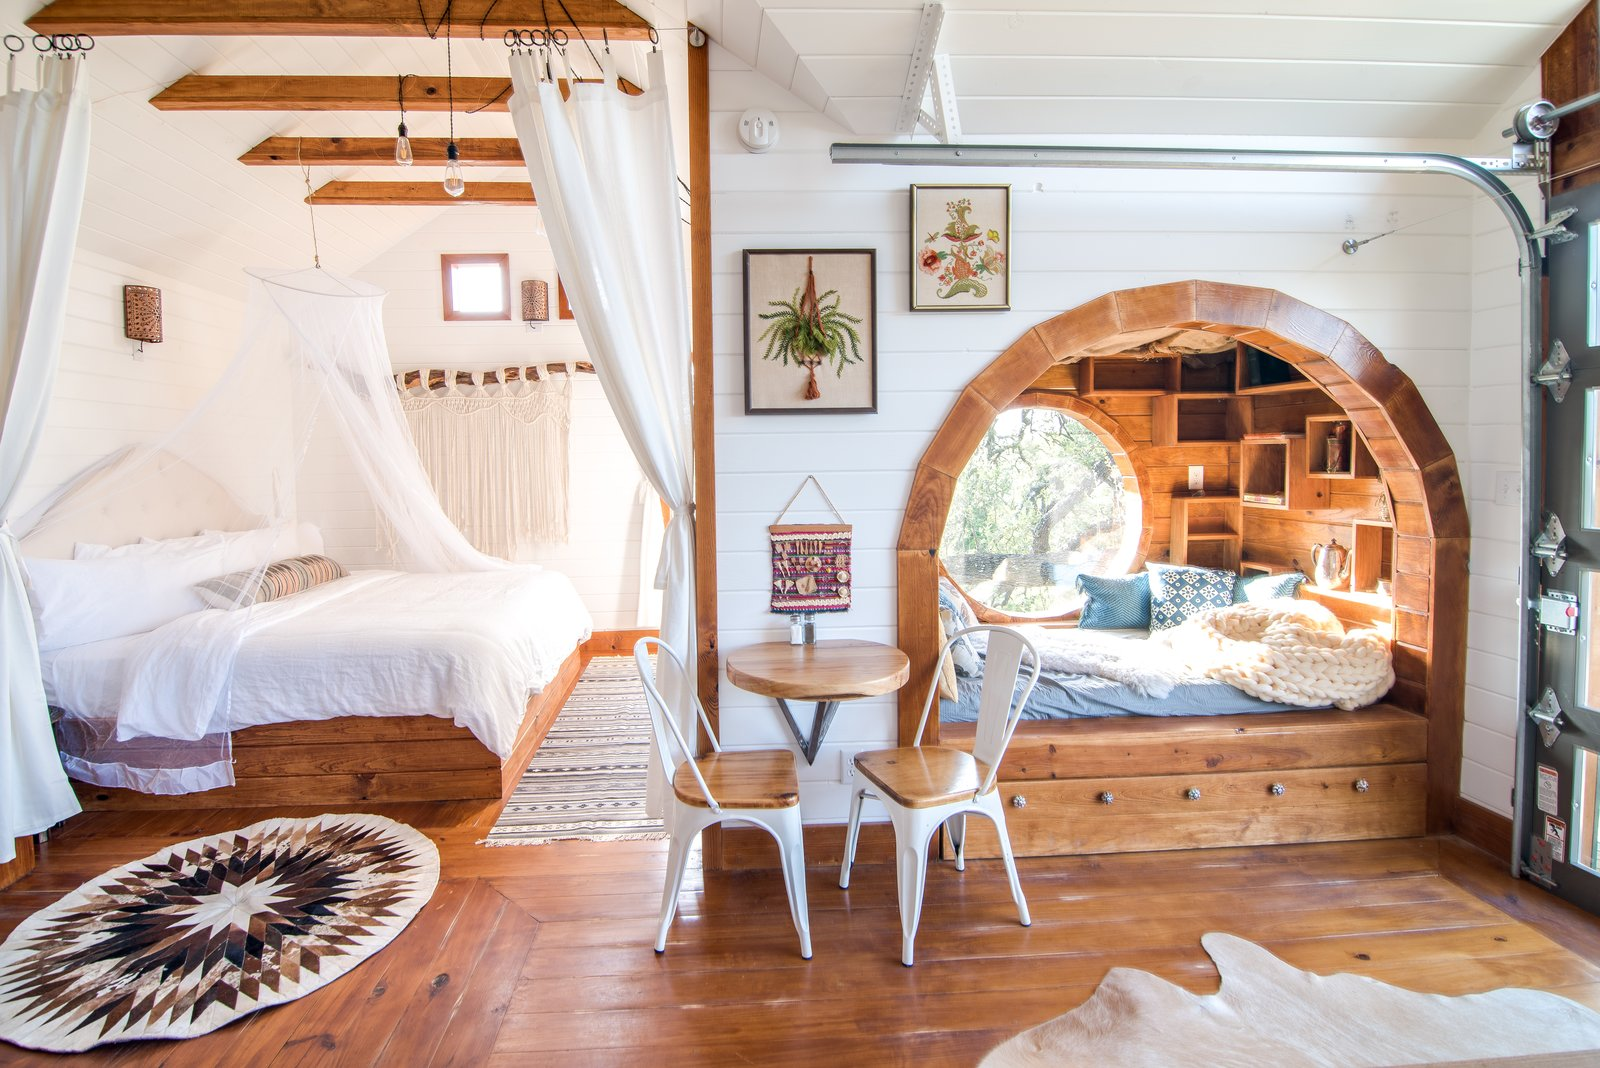 Bedroom, Bed, Medium Hardwood Floor, Ceiling Lighting, Bookcase, and Shelves A wood-clad book nook and pine beams and flooring lend warmth and texture in The Live Oak tree house.  Photo 2 of 10 in Book a Stay in This Whimsical Trio of Tiny Tree Houses